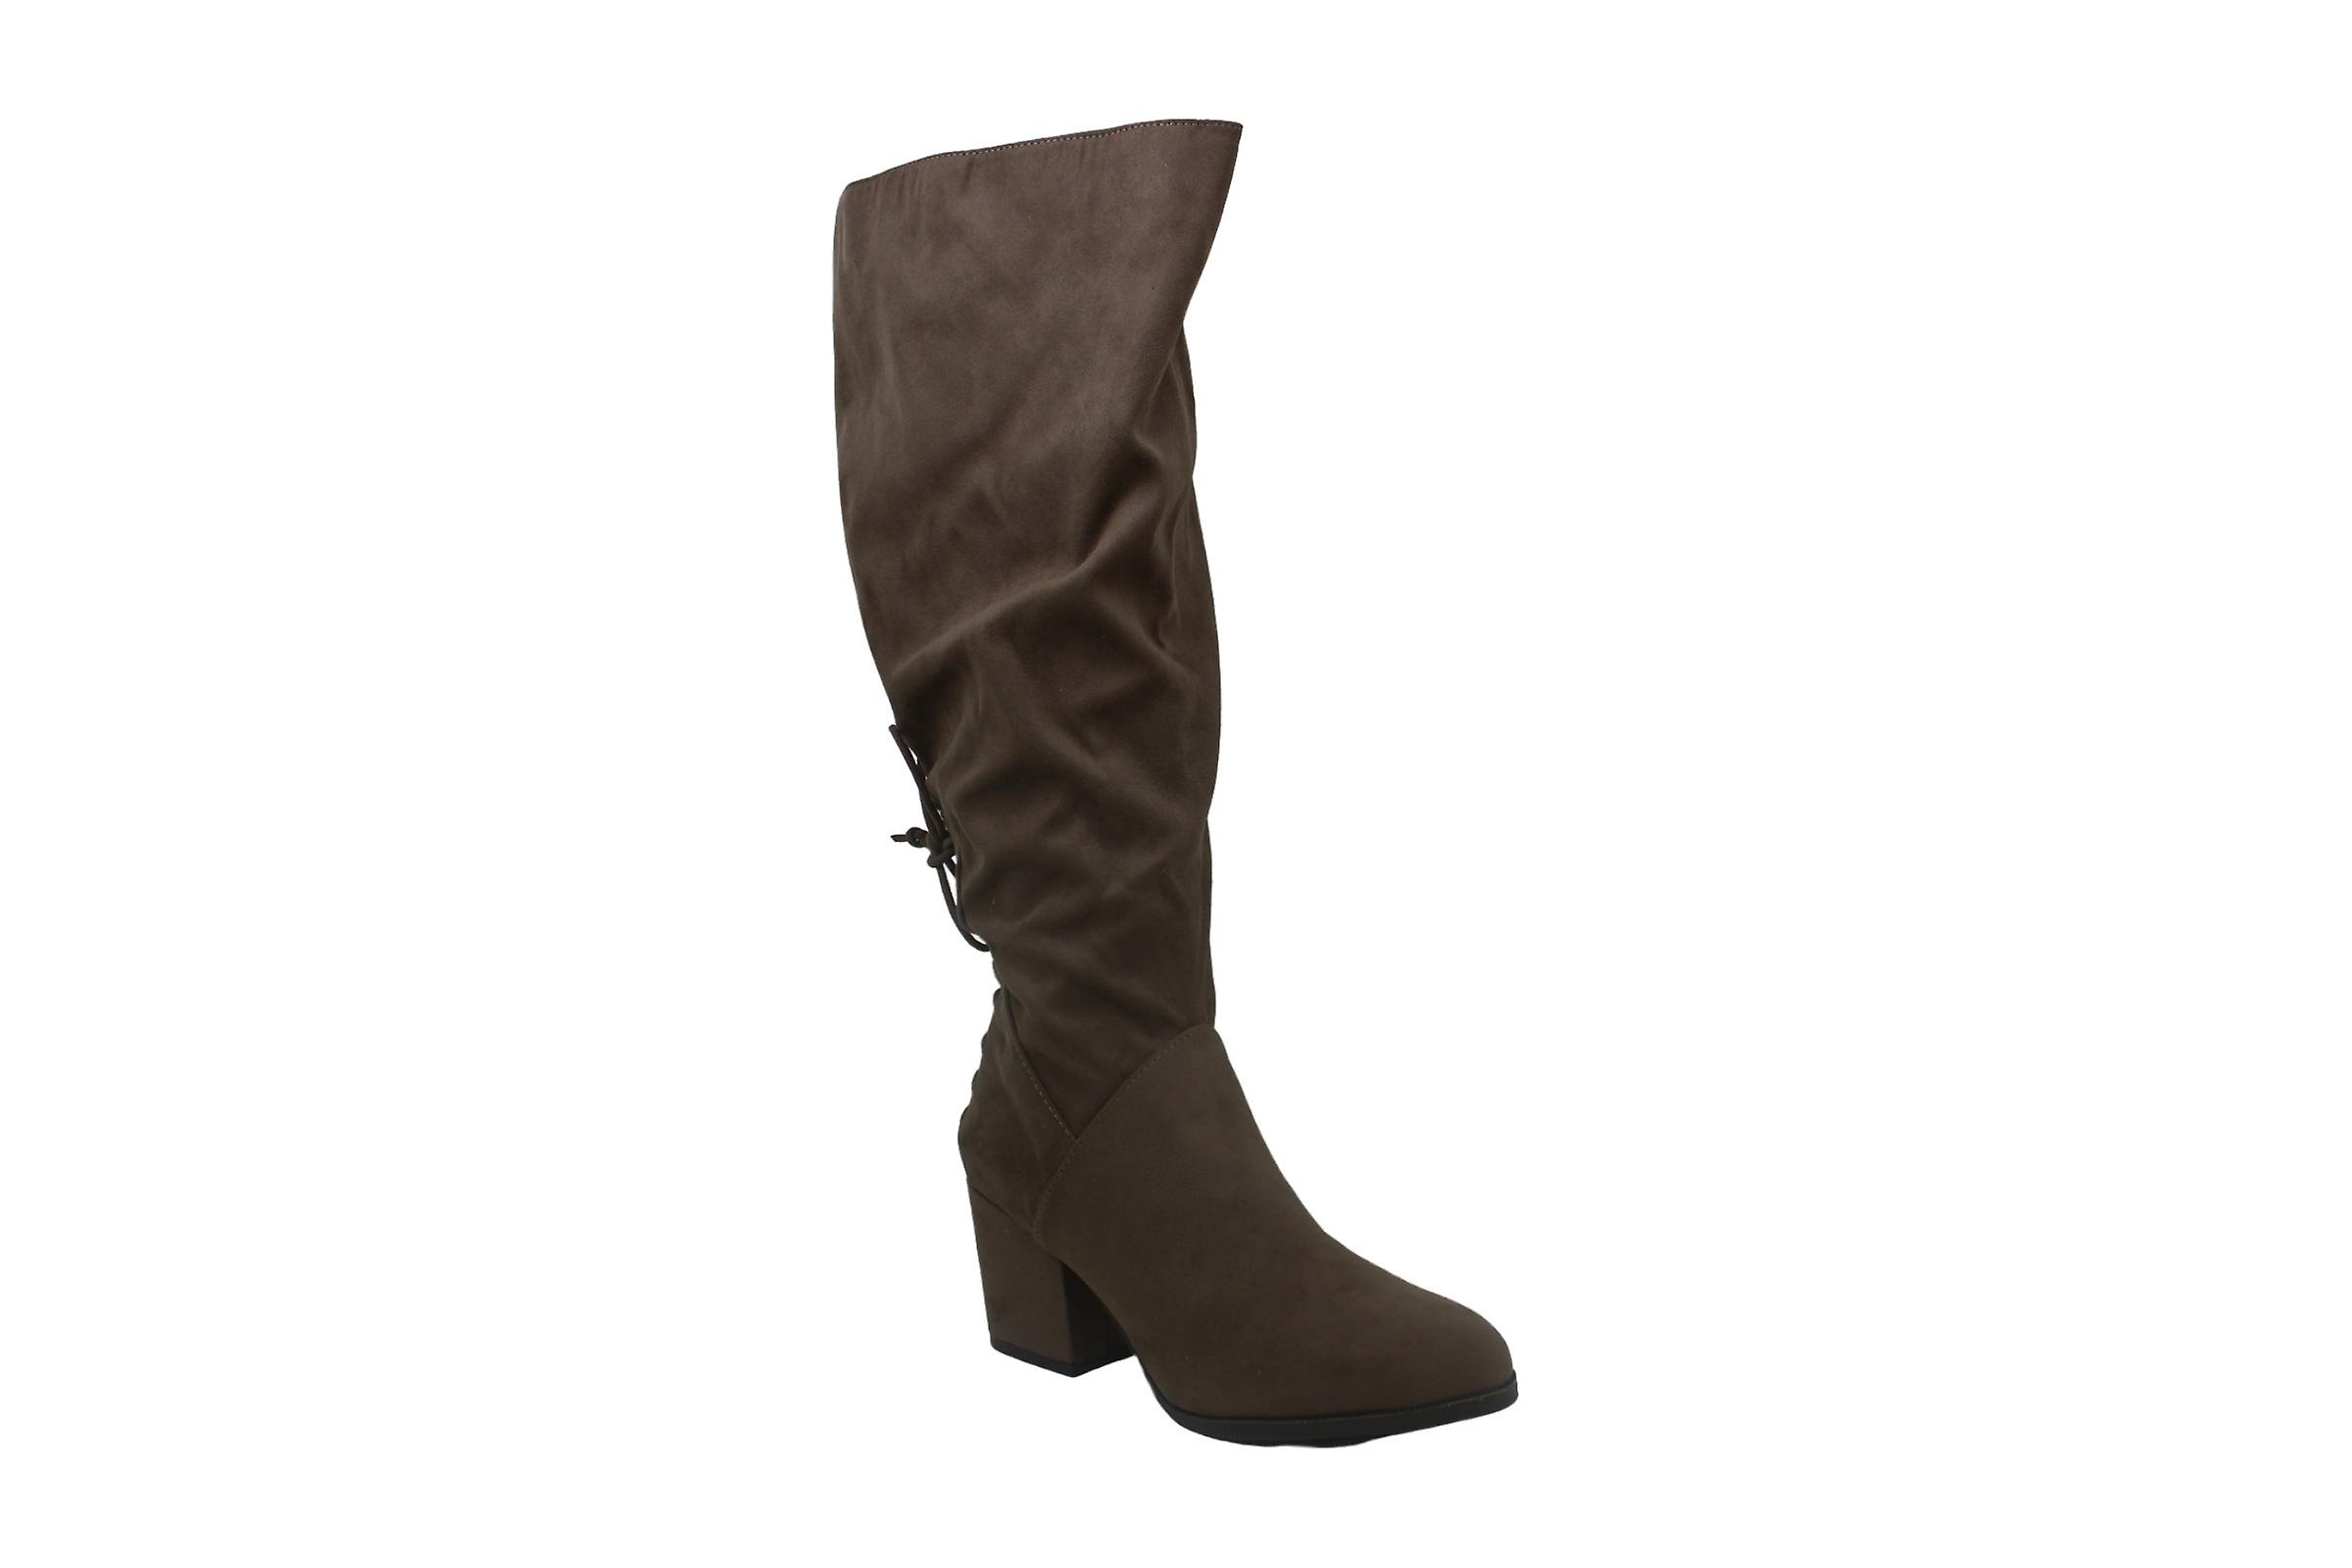 Brinley Co. Womens Knee-High Heeled Boot Taupe, 9 Extra Wide Calf US 9fMWm